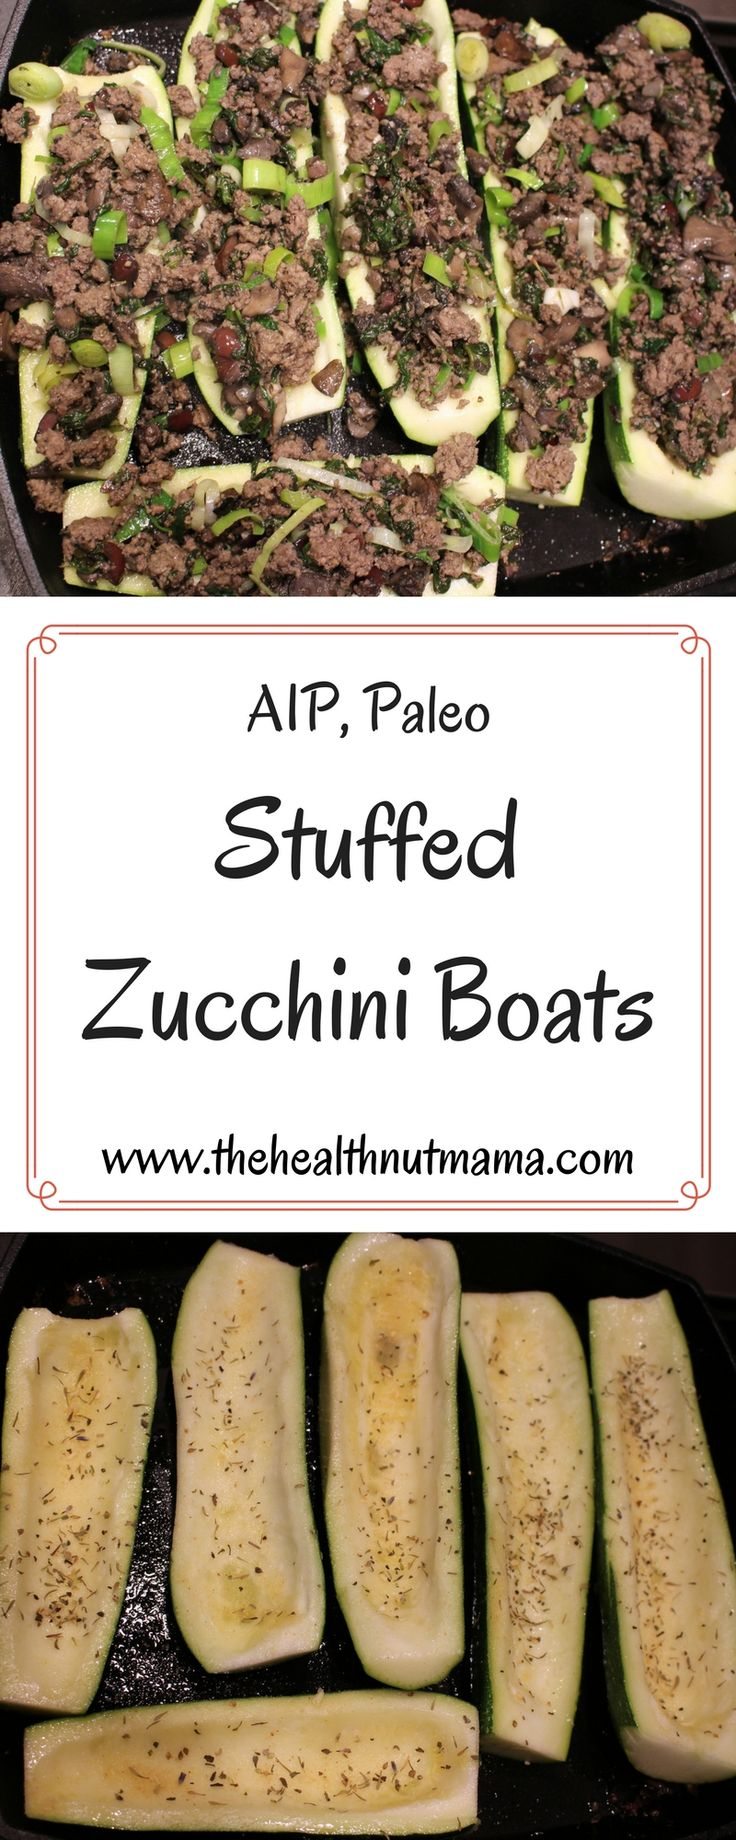 What to do with all that summer Zucchini that's coming in? How about Stuffed Zucchini Boats. Not only are they easy & delish but healthy too! (AIP, Paleo) #aip #paleo #zucchini #recipes #healthyrecipes #whole30 #keto #lowcarb #grainfree #glutenfree #dairyfree www.thehealthnutmama.com